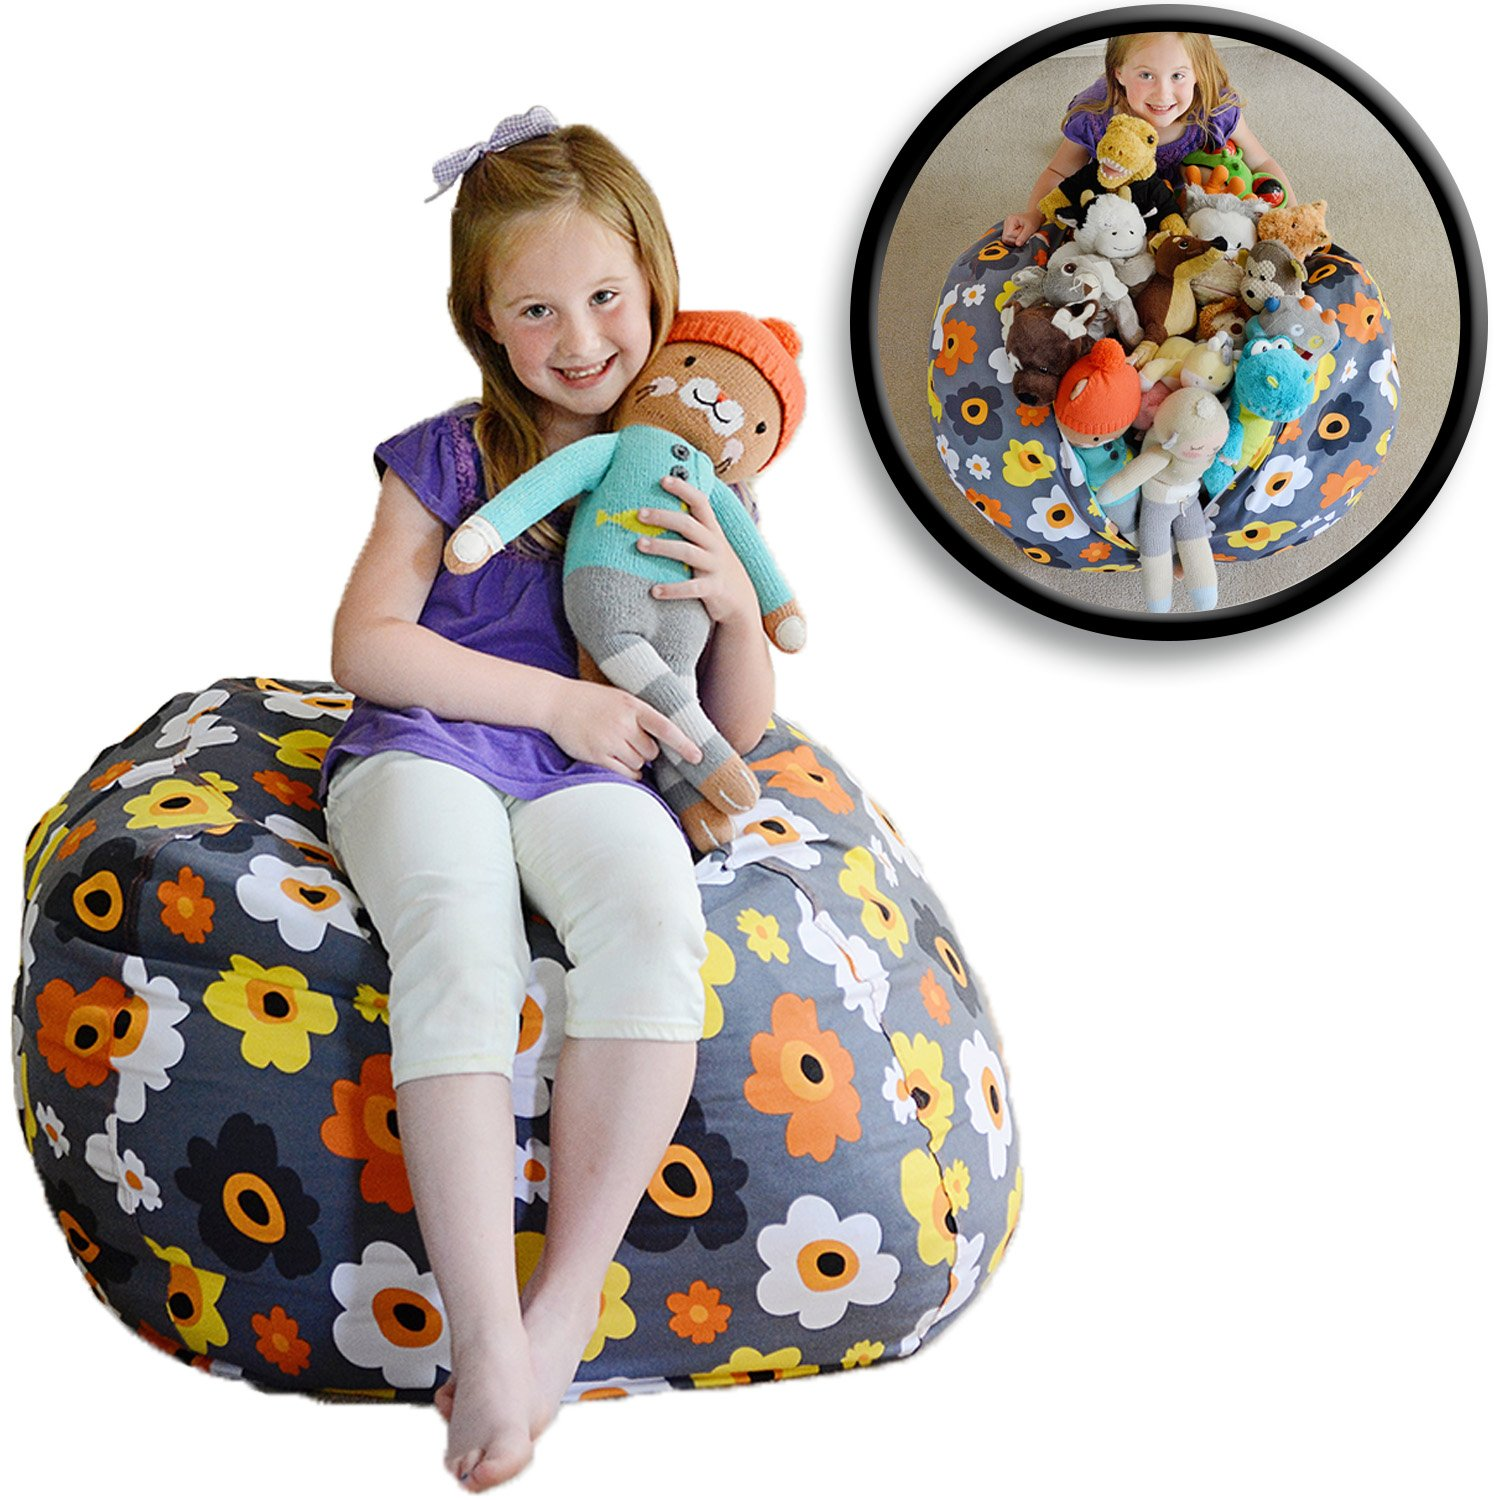 "Extra Large - Stuffed Animal Storage Bean Bag Chair - Premium Cotton Canvas - Clean Up The Room And Put Those Critters To Work For You! - By Creative Qt (38"", Grey Floral)"